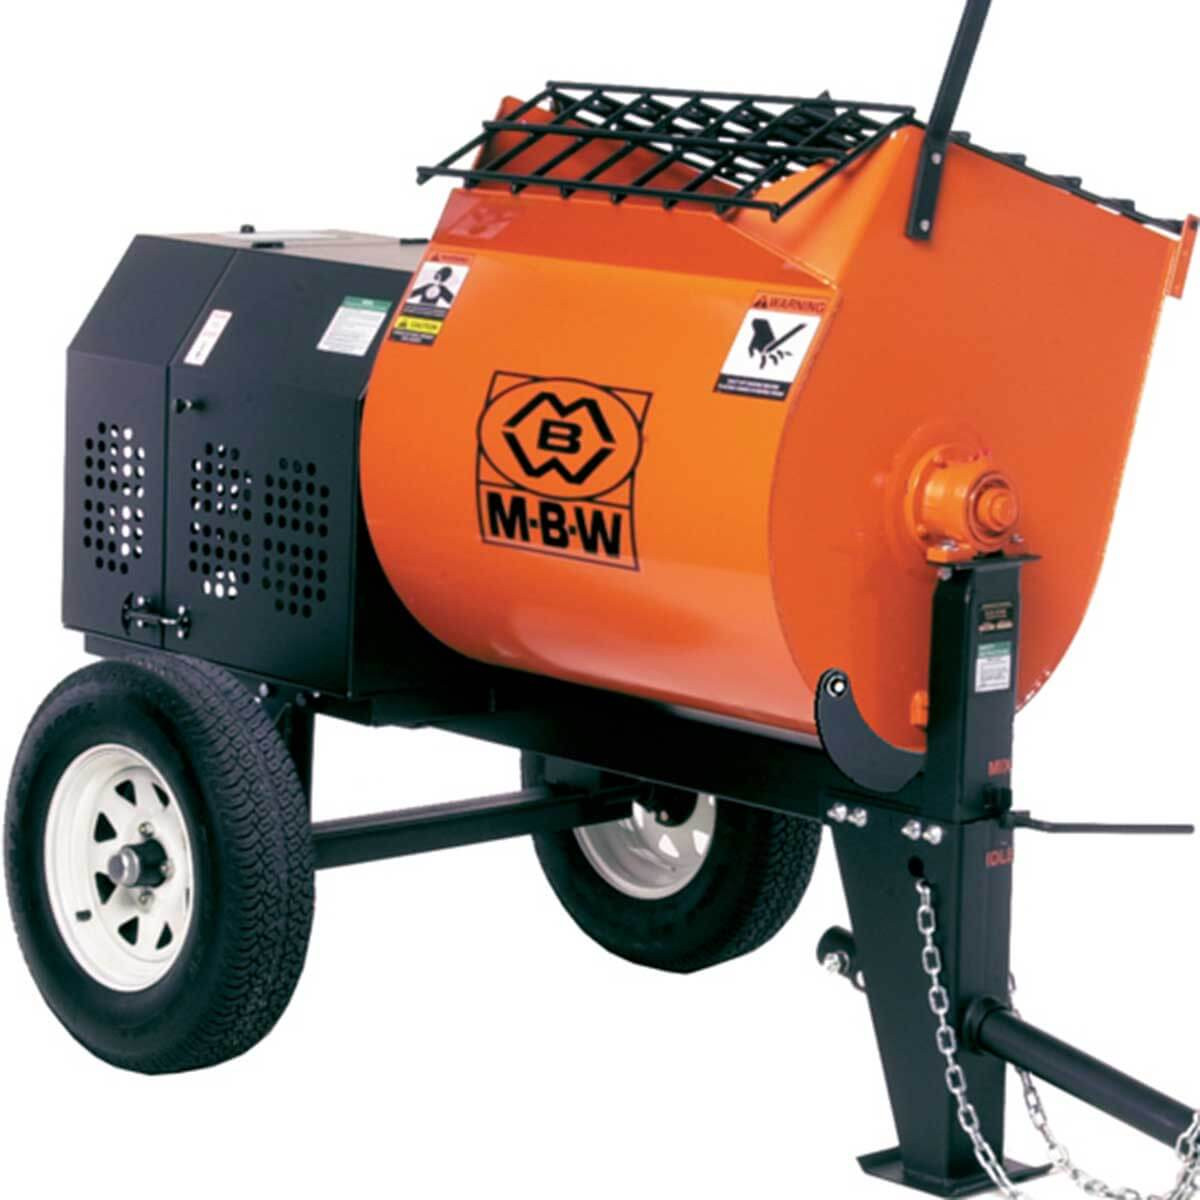 MBW Mortar Plaster electric mixer